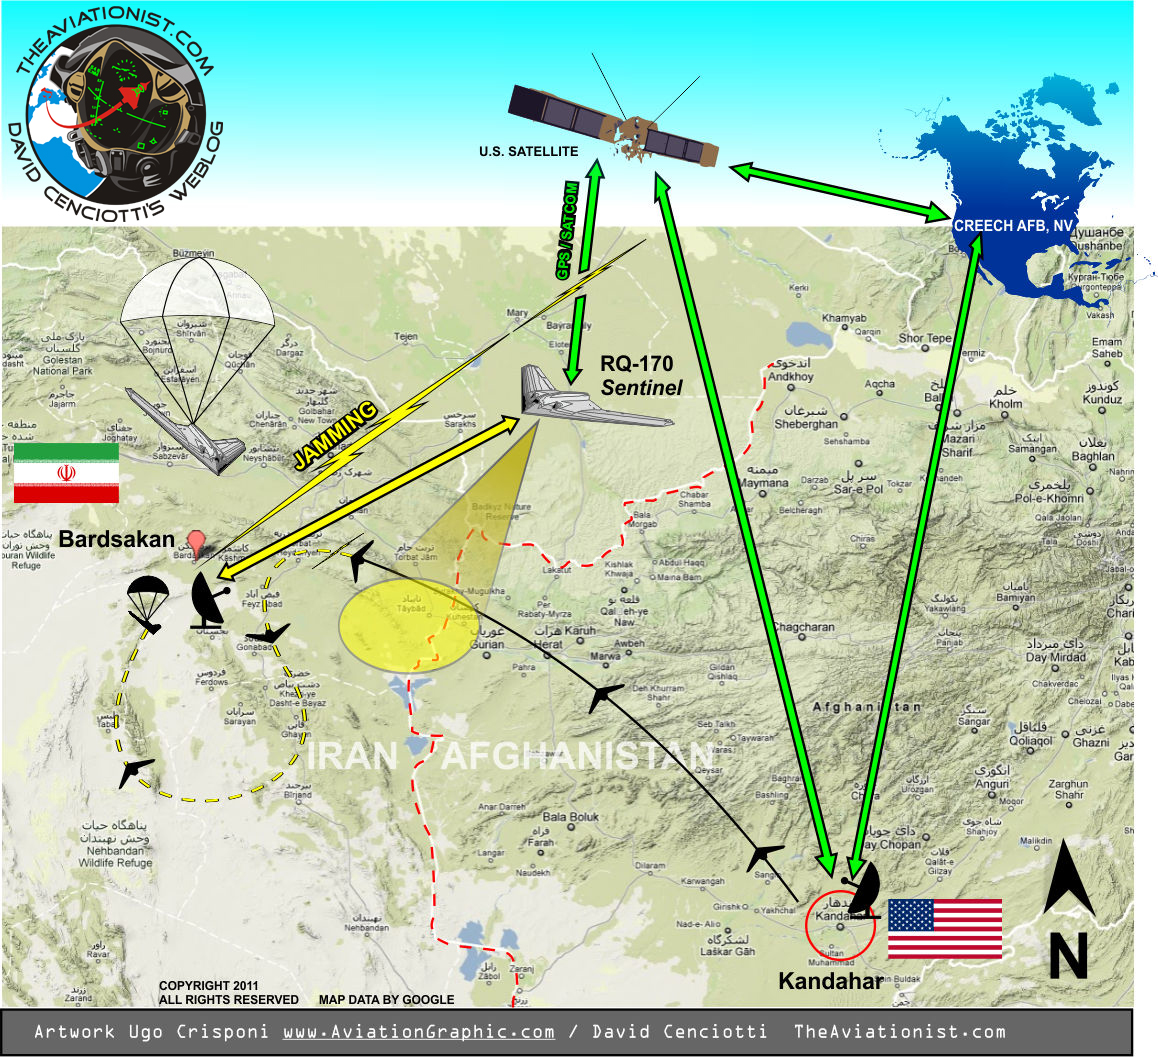 The Iranians say the RQ-170 was hijacked using Jamming and GPS spoofing attack tailored on known vulnerabilities of the UAV highlighted in Air Force official documents.